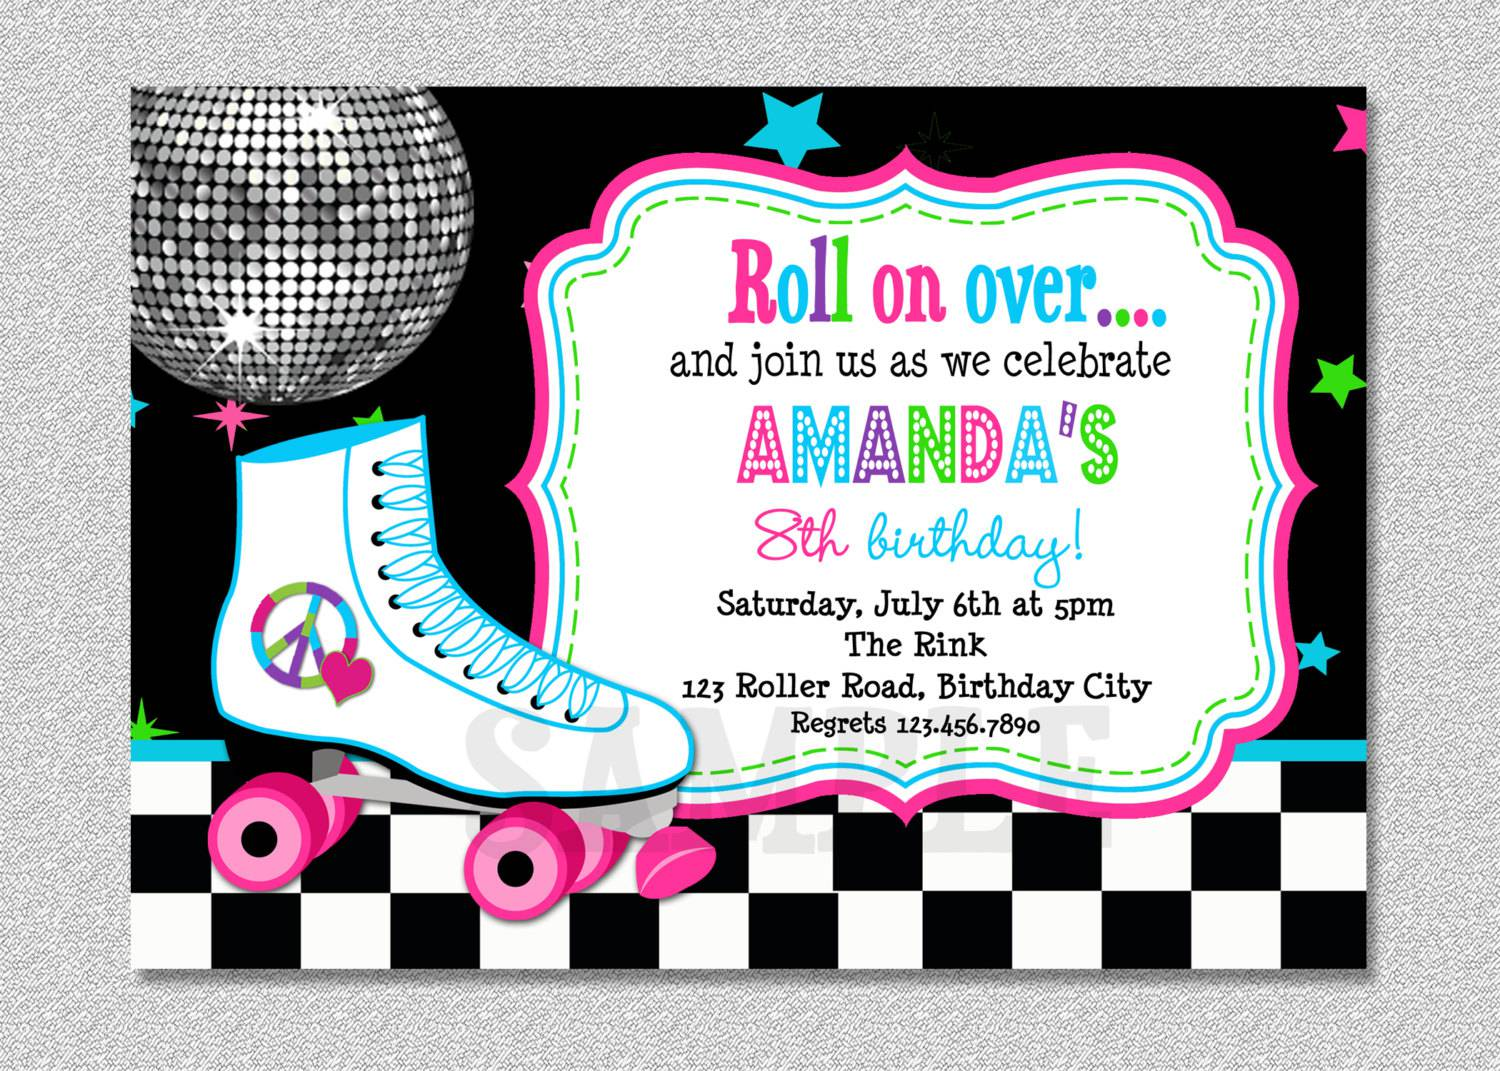 Roller Skating Birthday Party Invitations Roller Skating Birthday